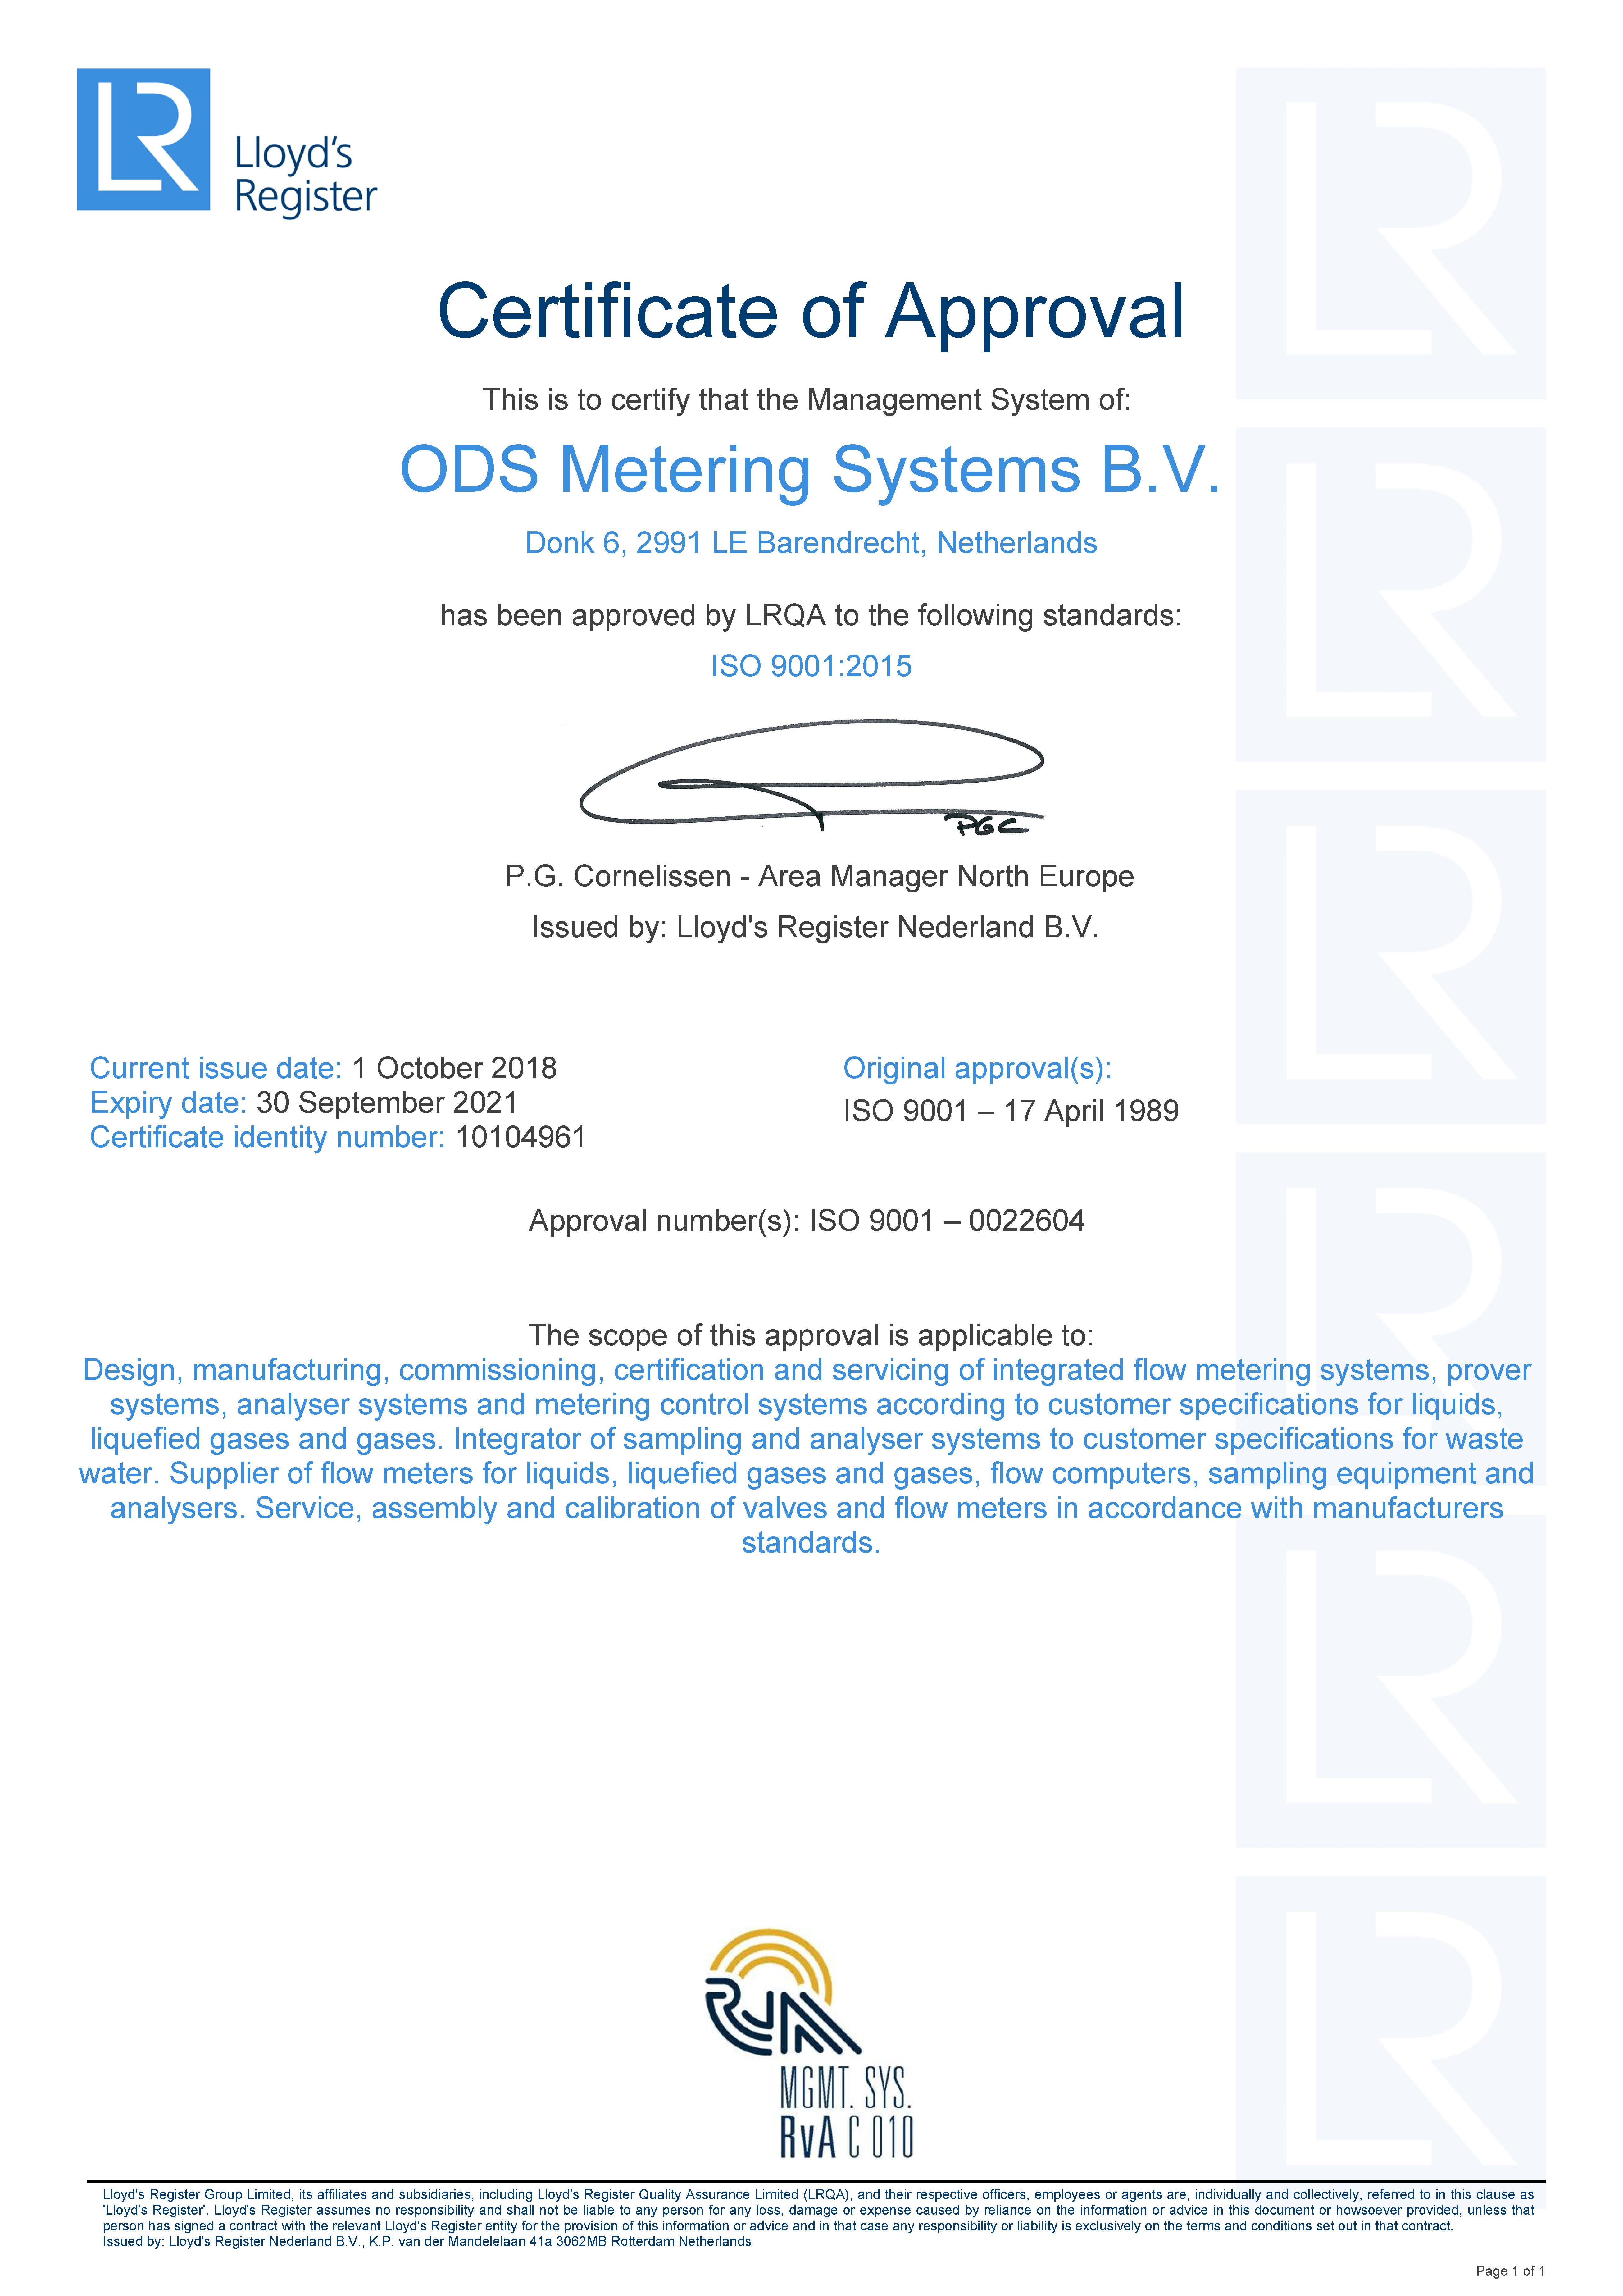 ODS Metering Systems ISO 9001 certificate